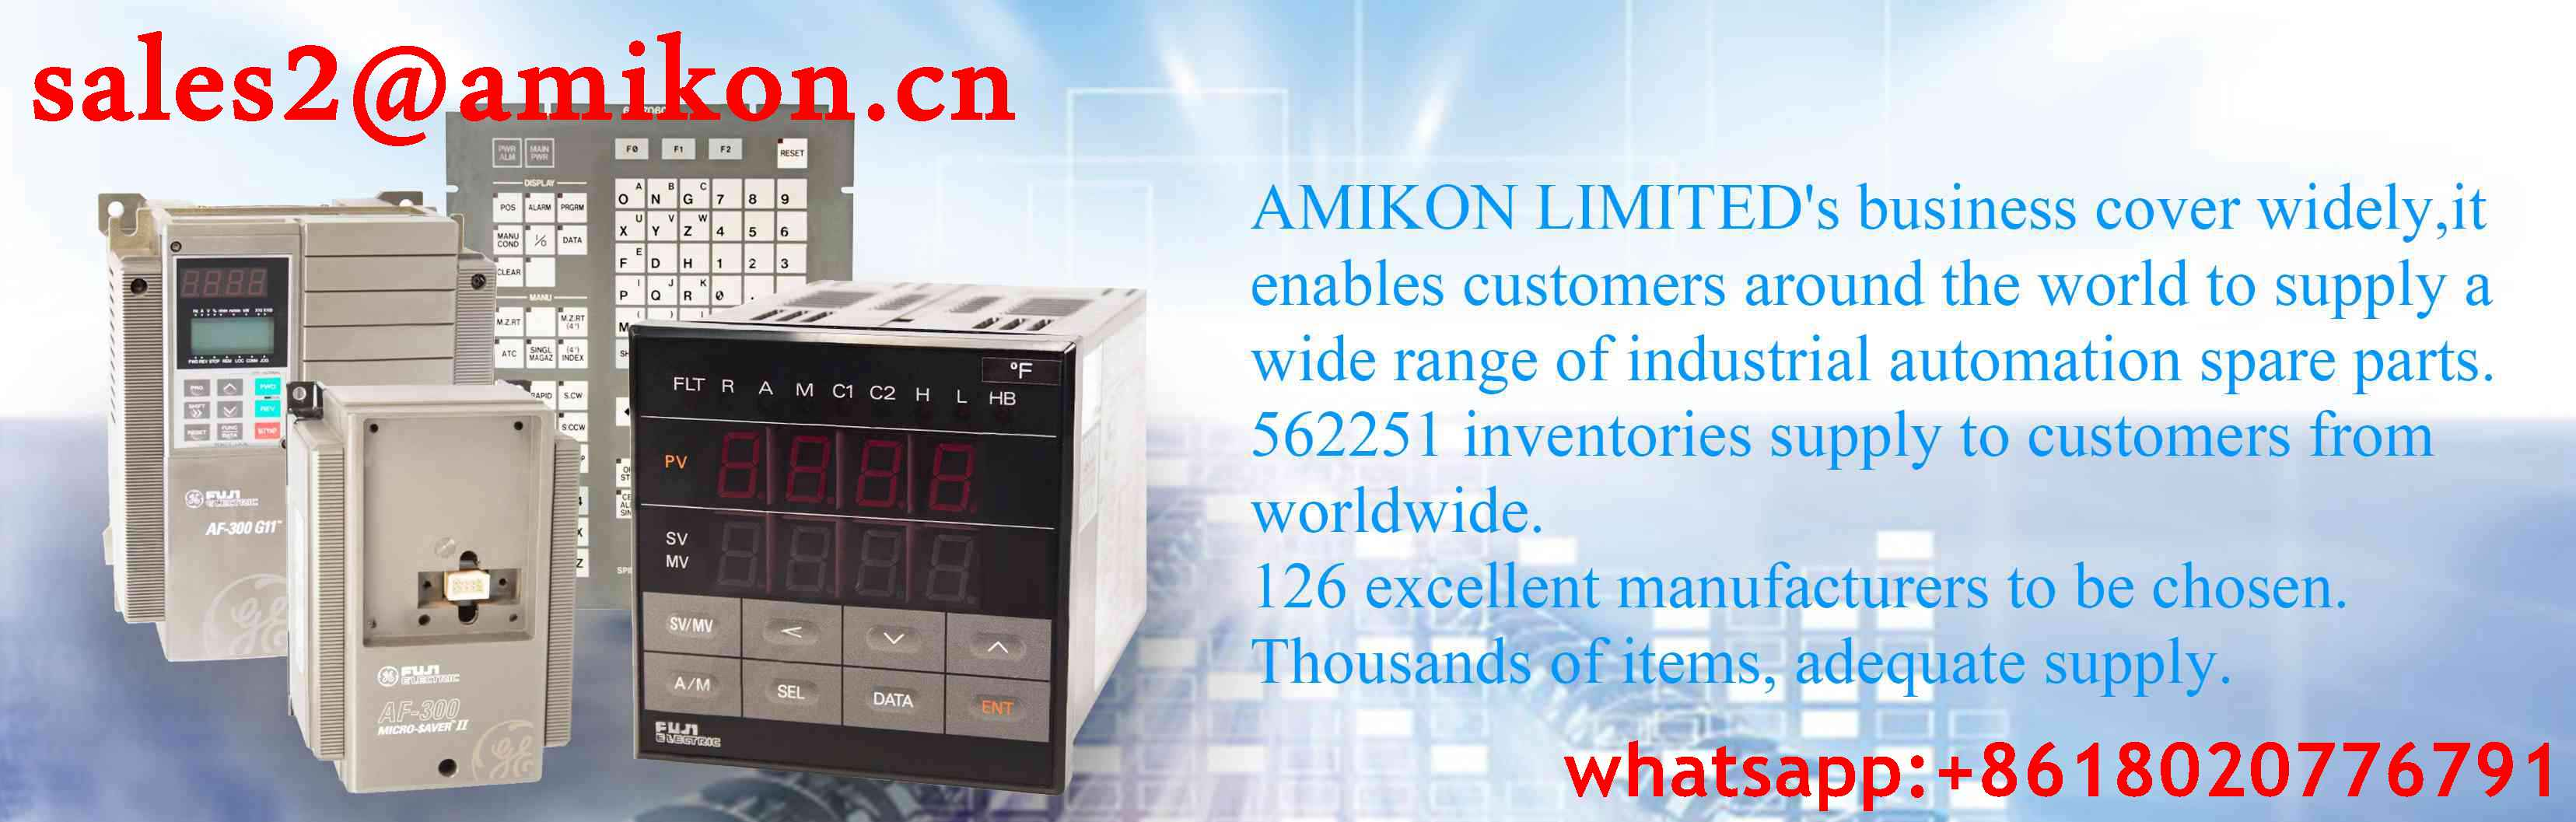 IC697CHS790 GE General Electric sales2@amikon.cn PLC DCS Industry Control System Module